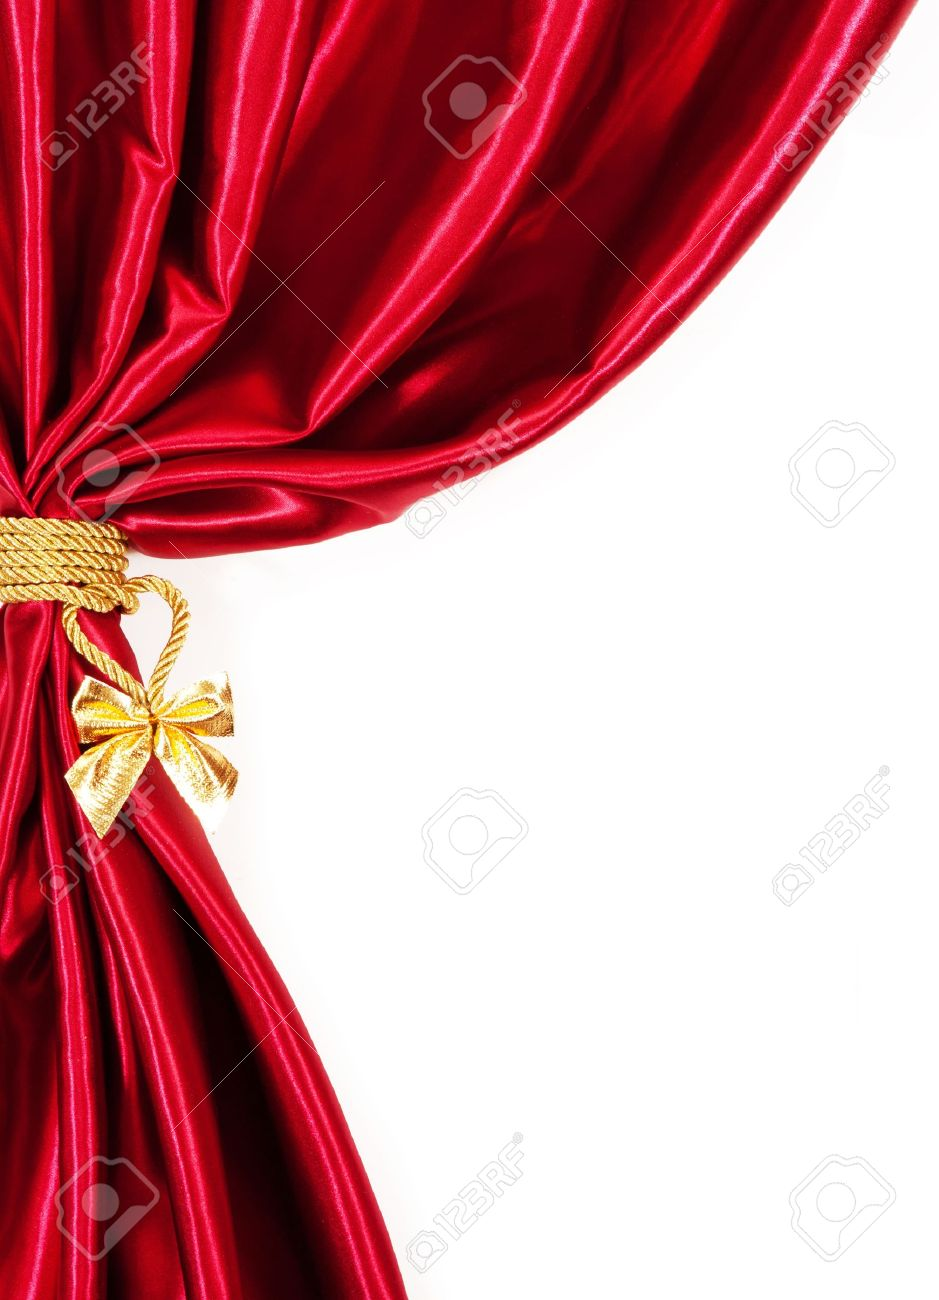 Royalty free or white curtain background drapes royalty free stock - Silk Curtains Isolated On White Background Stock Photo 16724651